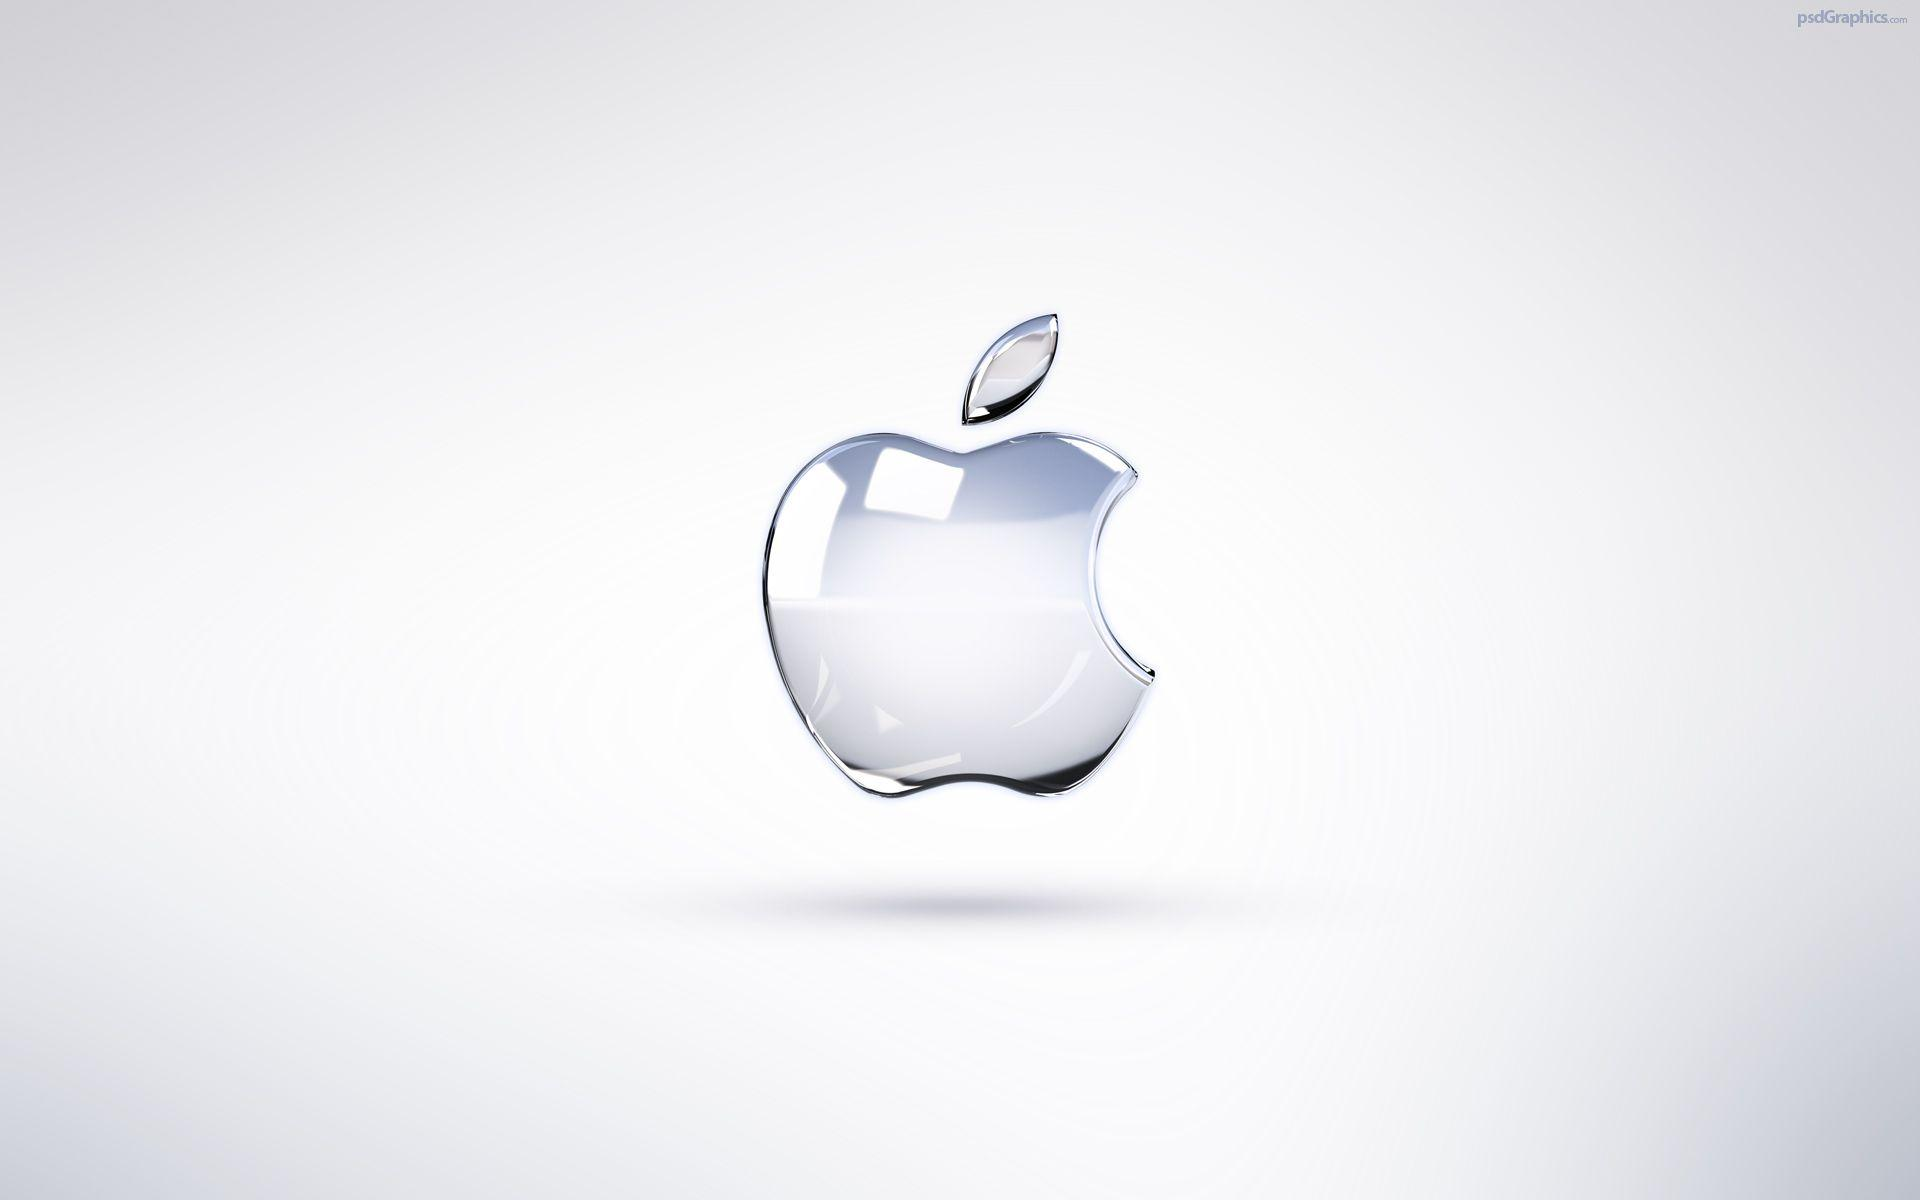 apple wallpapers - wallpaper cave